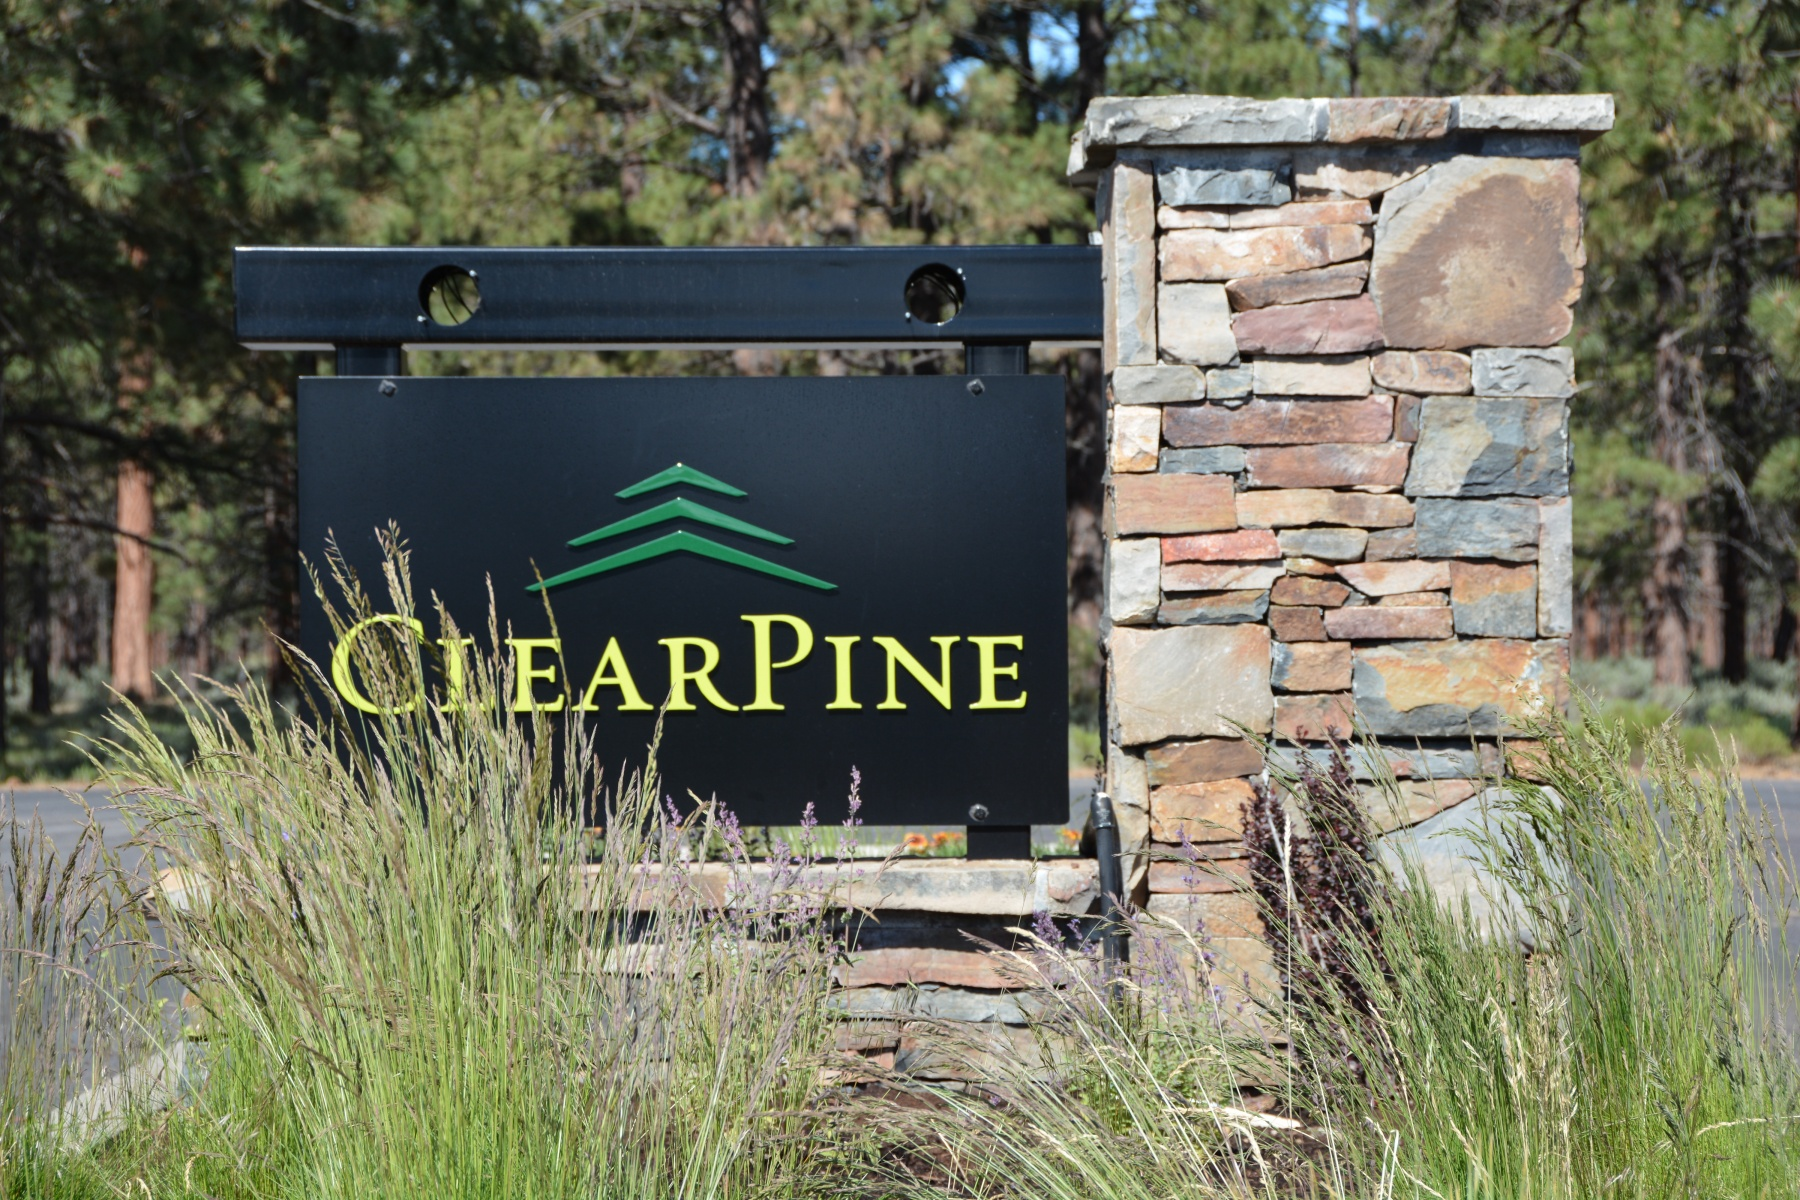 Land for Sale at Flat Build Ready Lot in ClearPine! 0 Clearpine Dr Lot 28 Sisters, Oregon, 97759 United States